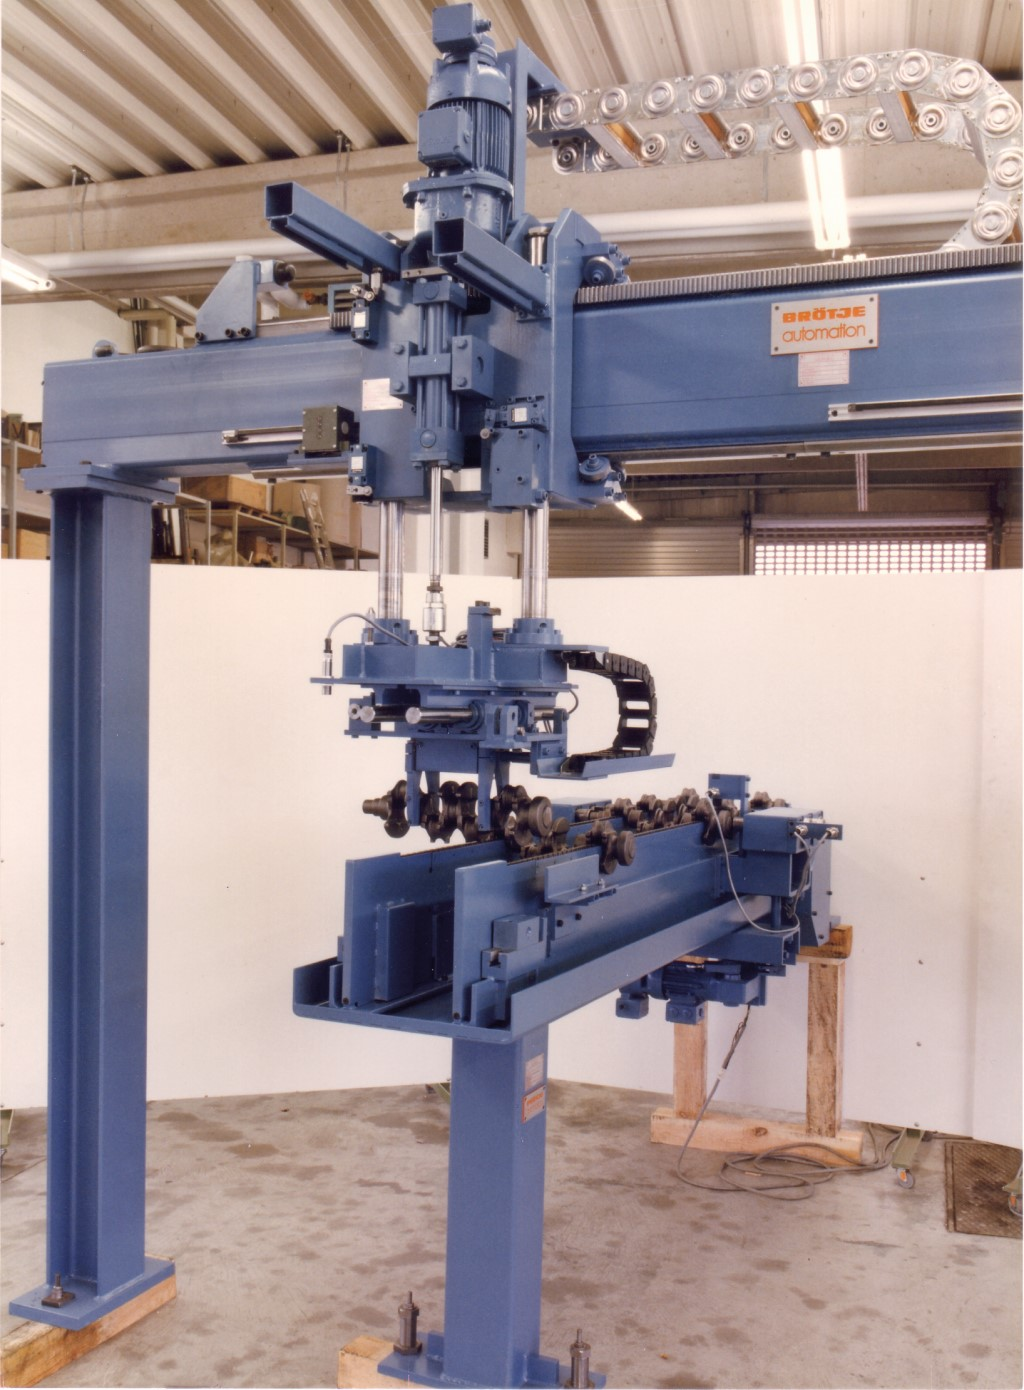 The success story of Broetje-Automation began in 1979 with a Flexiport loading system for the automotive industry. Photo: Broetje-Automation GmbH